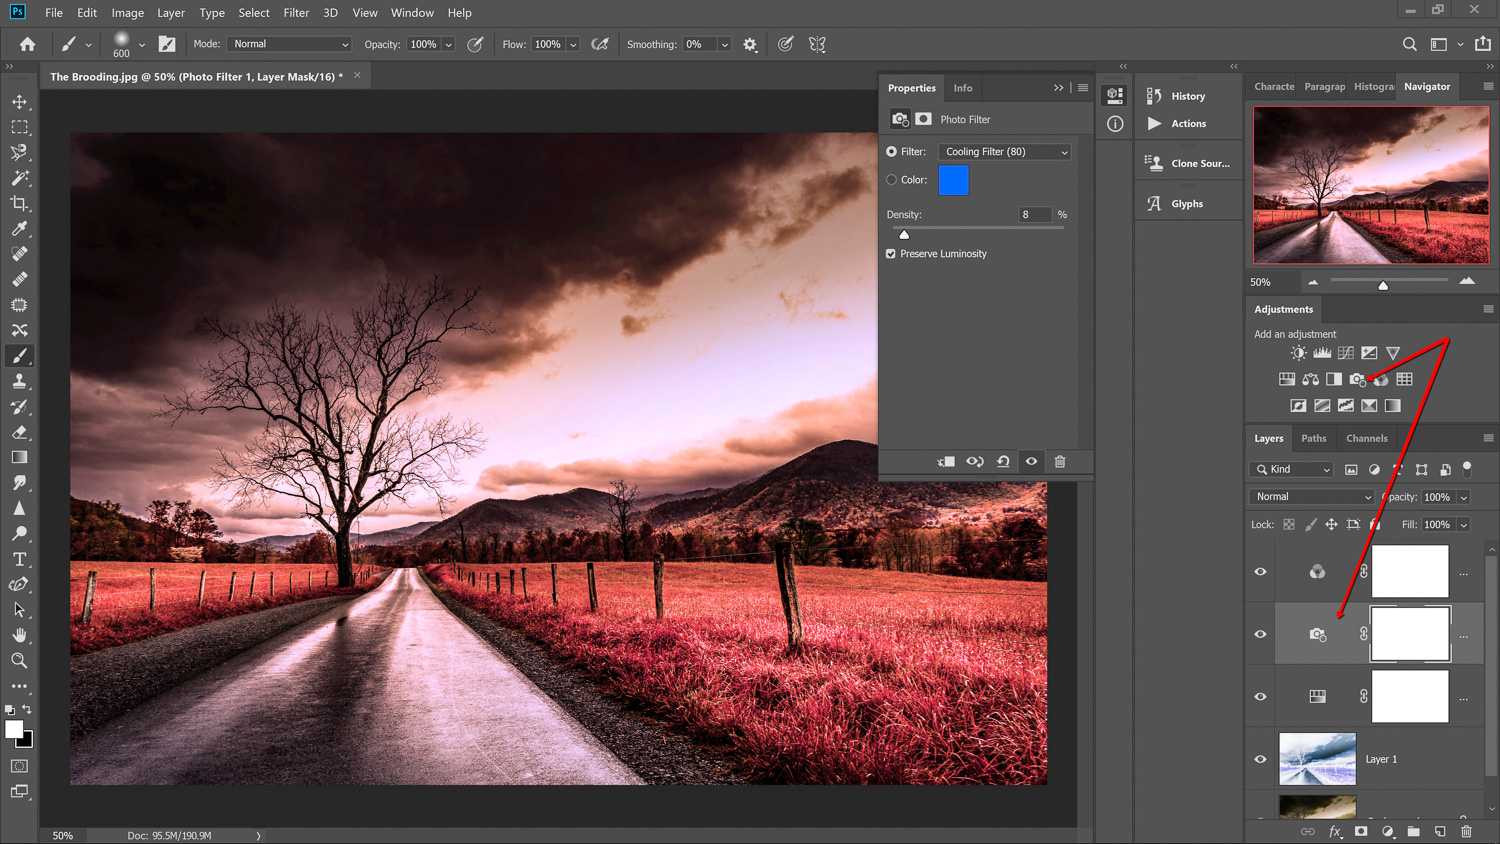 Infrared photography in Photoshop with cooling filter applied